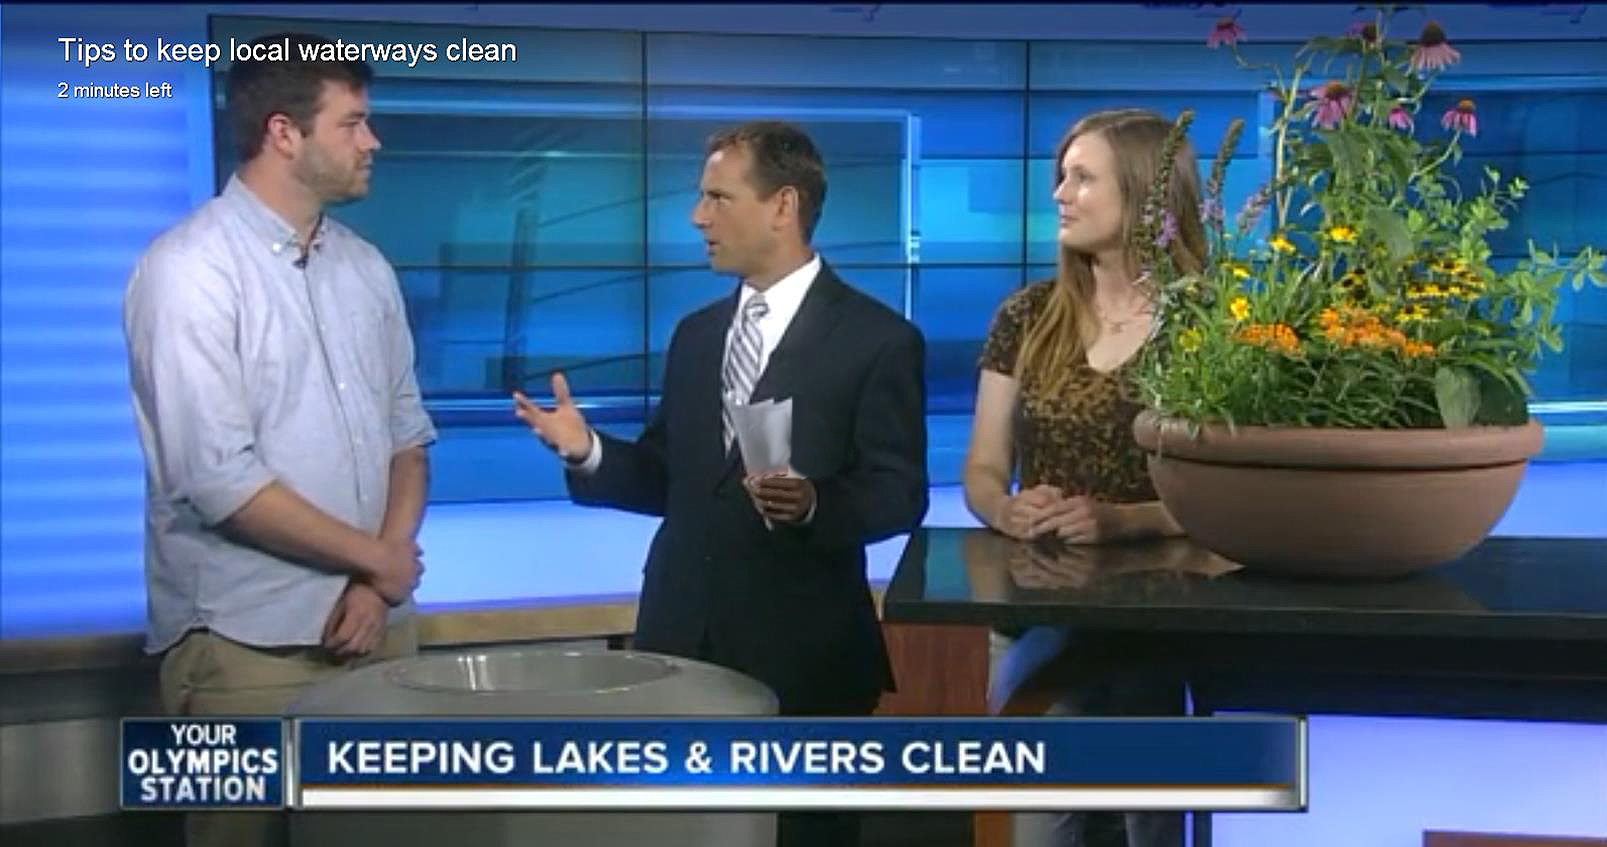 Jake Fincher and Allison Thielen talk about things we can all do to help keep our lakes and rivers clean.